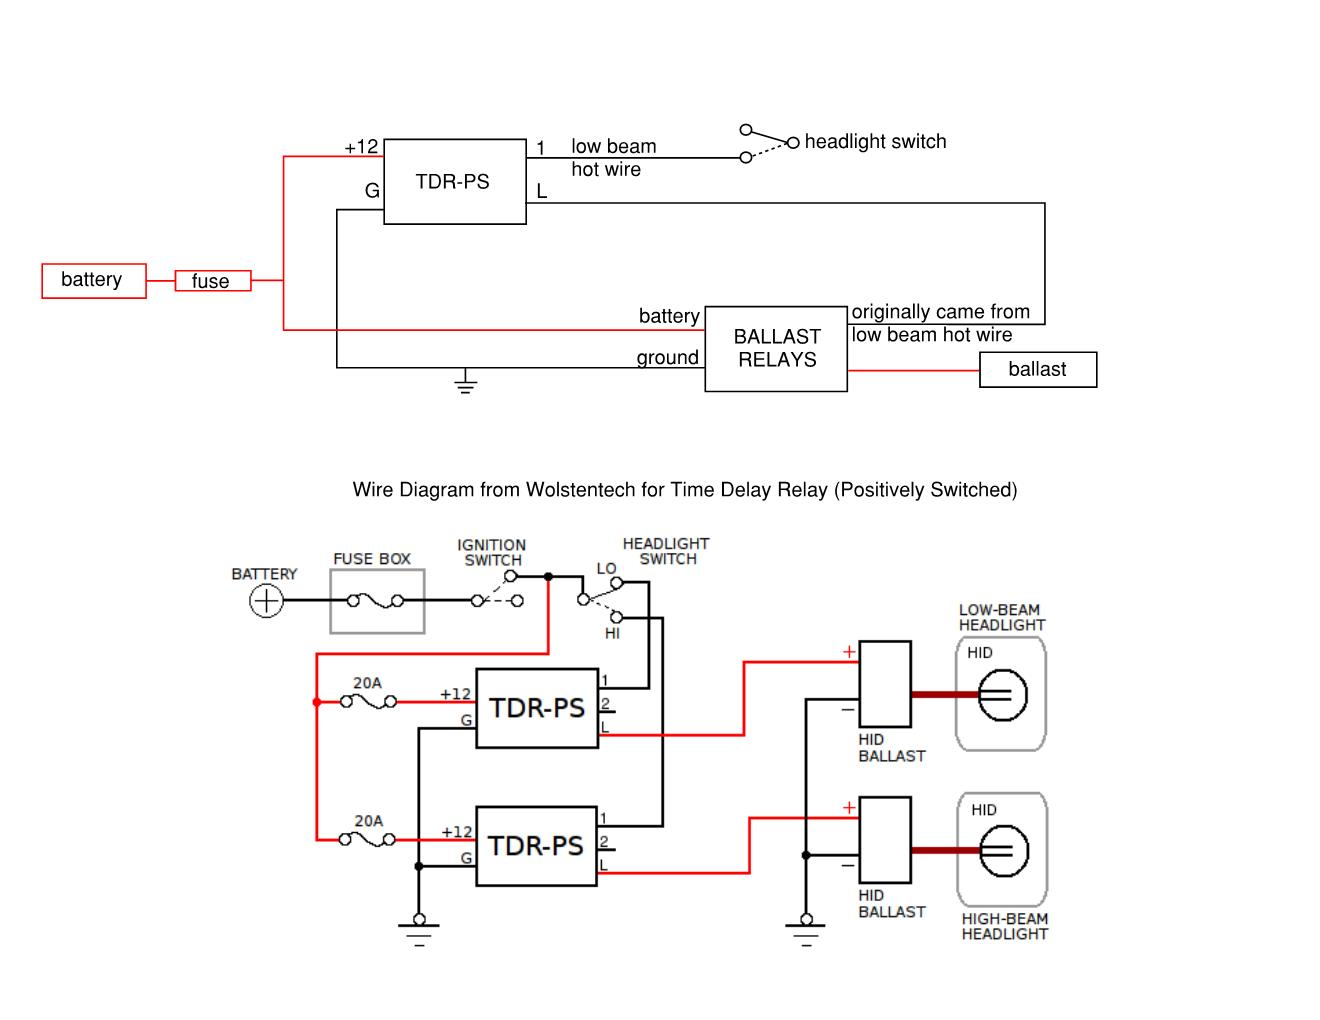 time delay relay circuit diagram volleyball 4 2 offense harley softail location free engine image